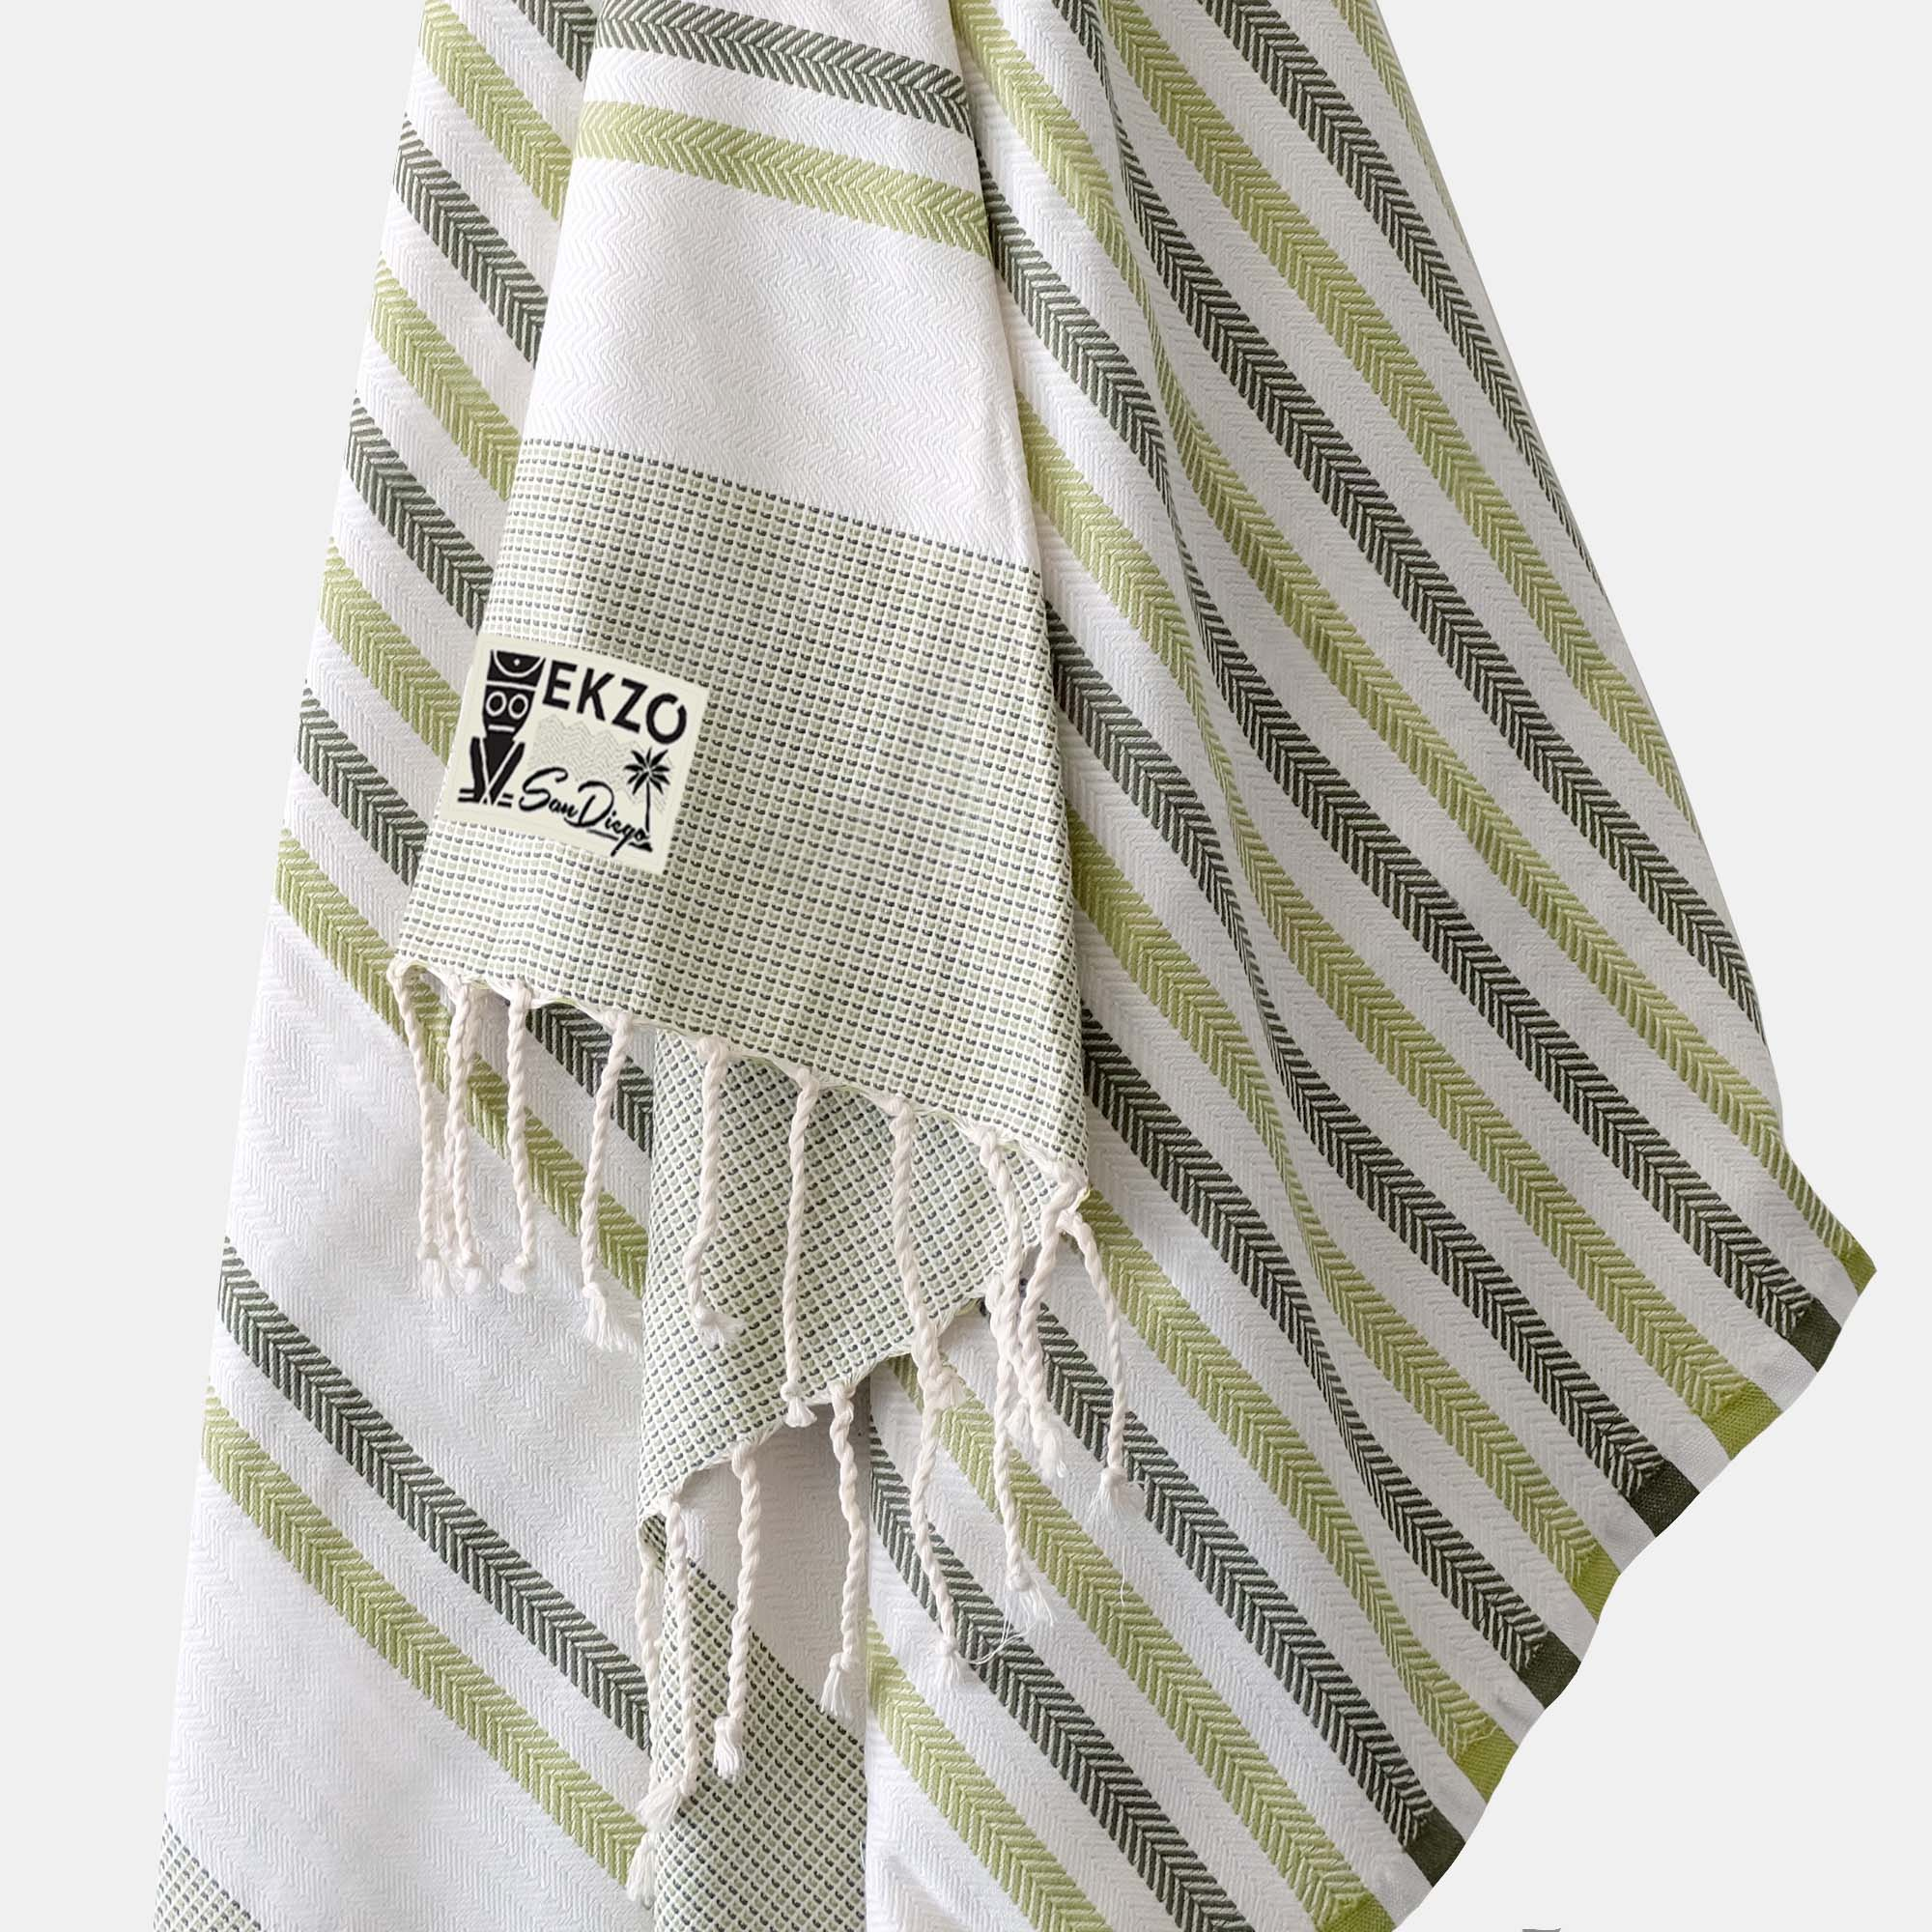 Shades of Green - Beach Towel - EKZO